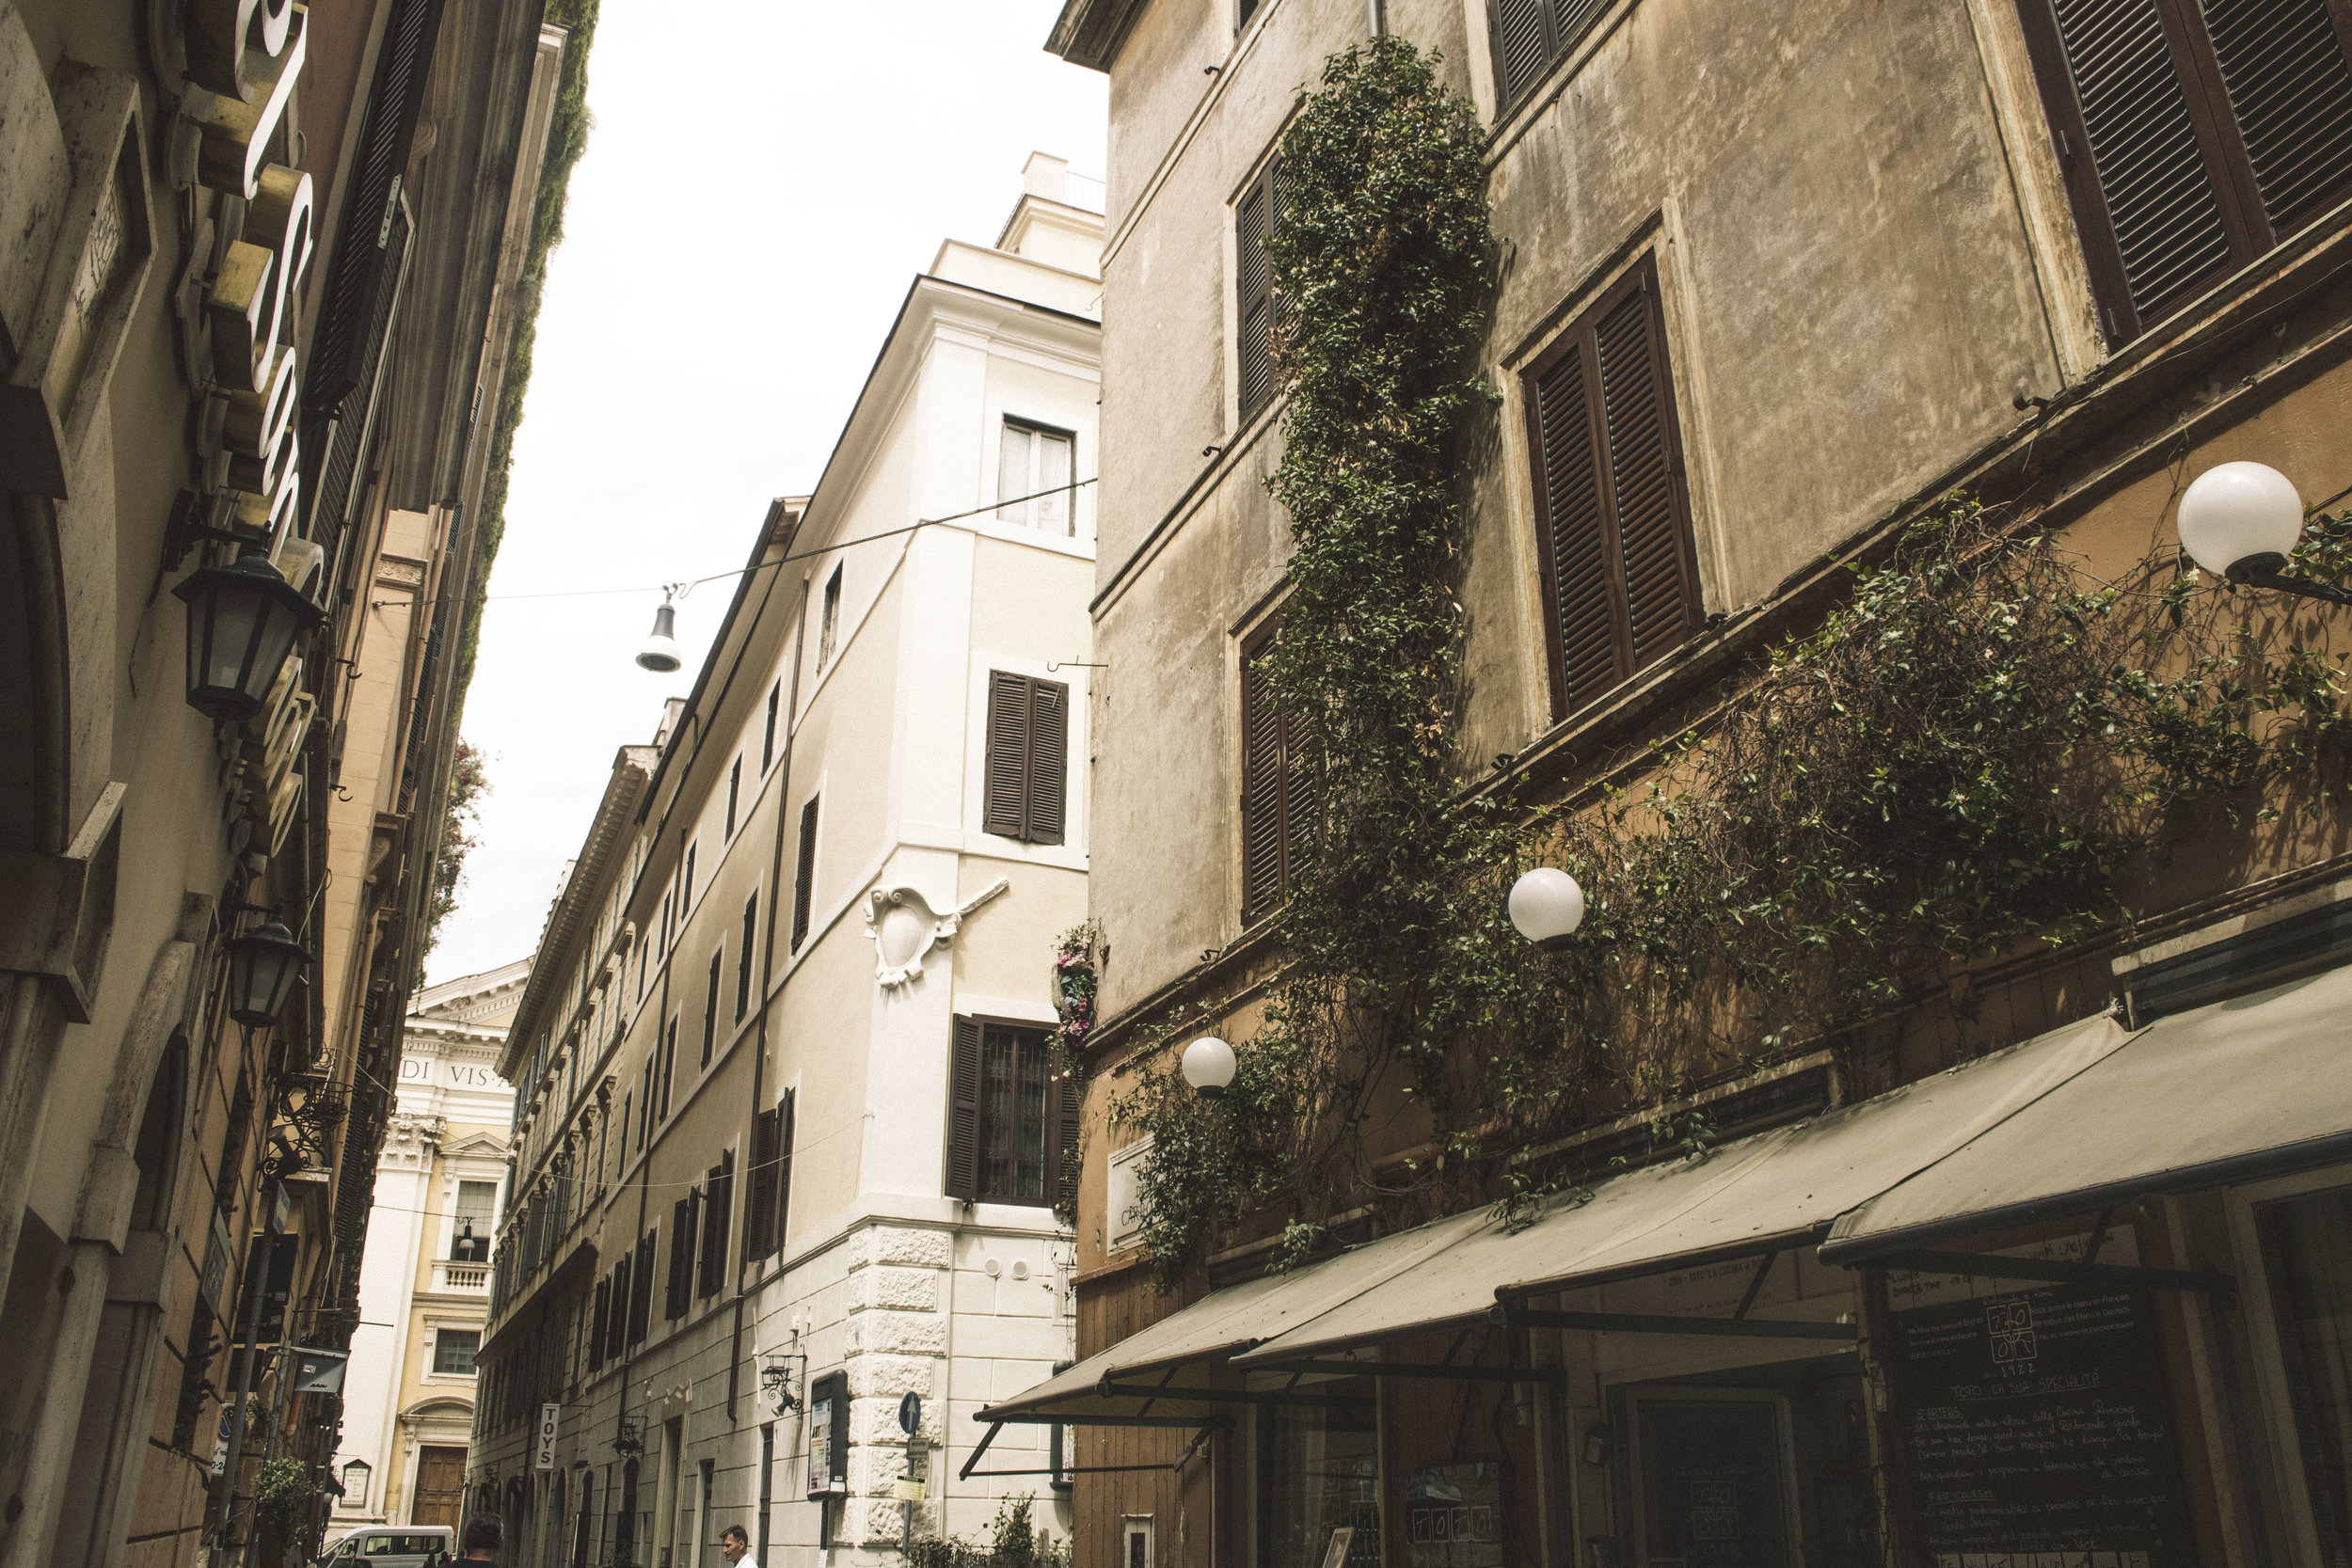 Wandering through the streets of Rome, Italy